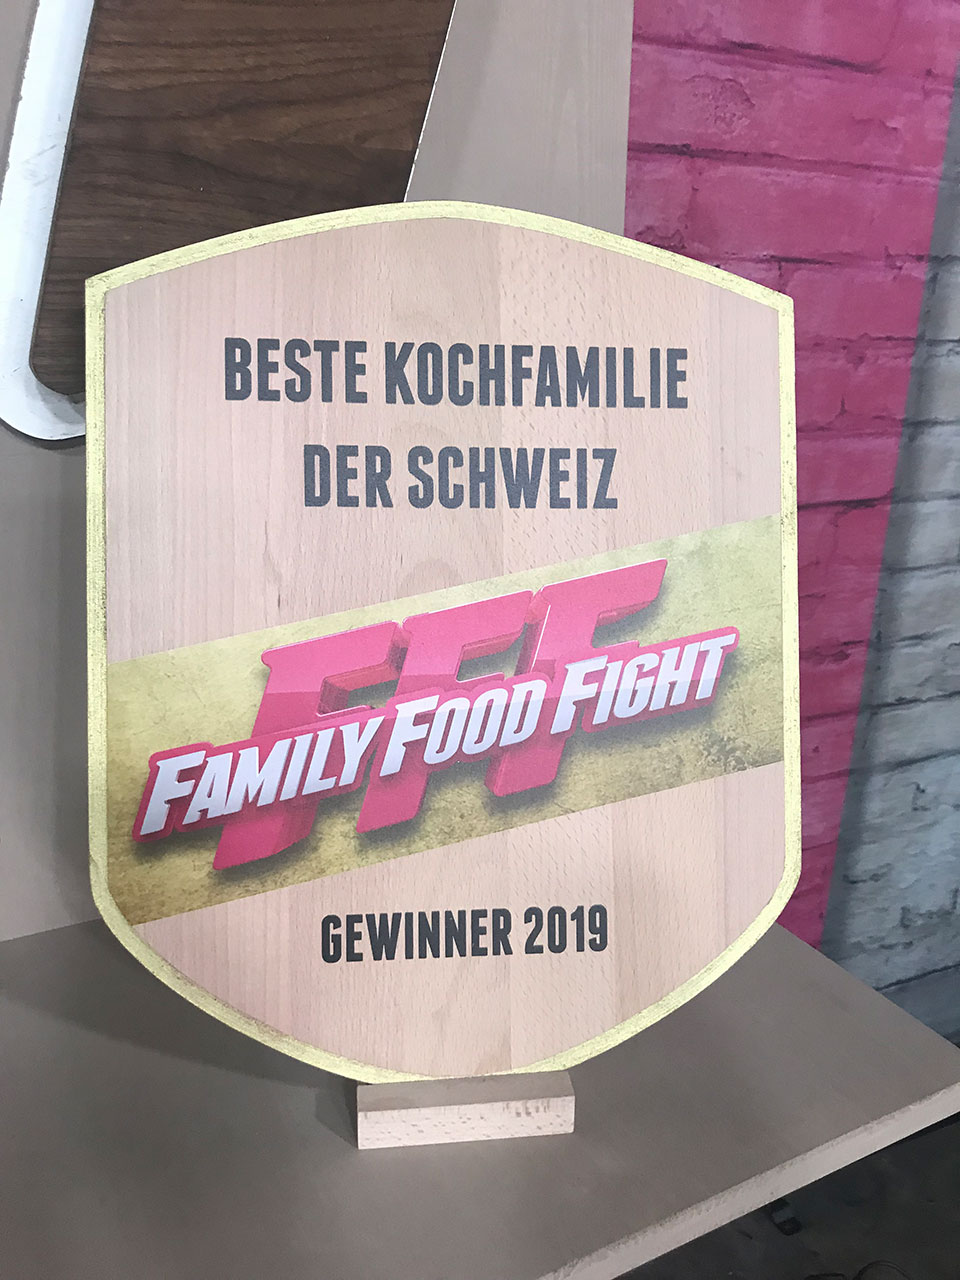 Bühnenbild Shows - Family Food Fight